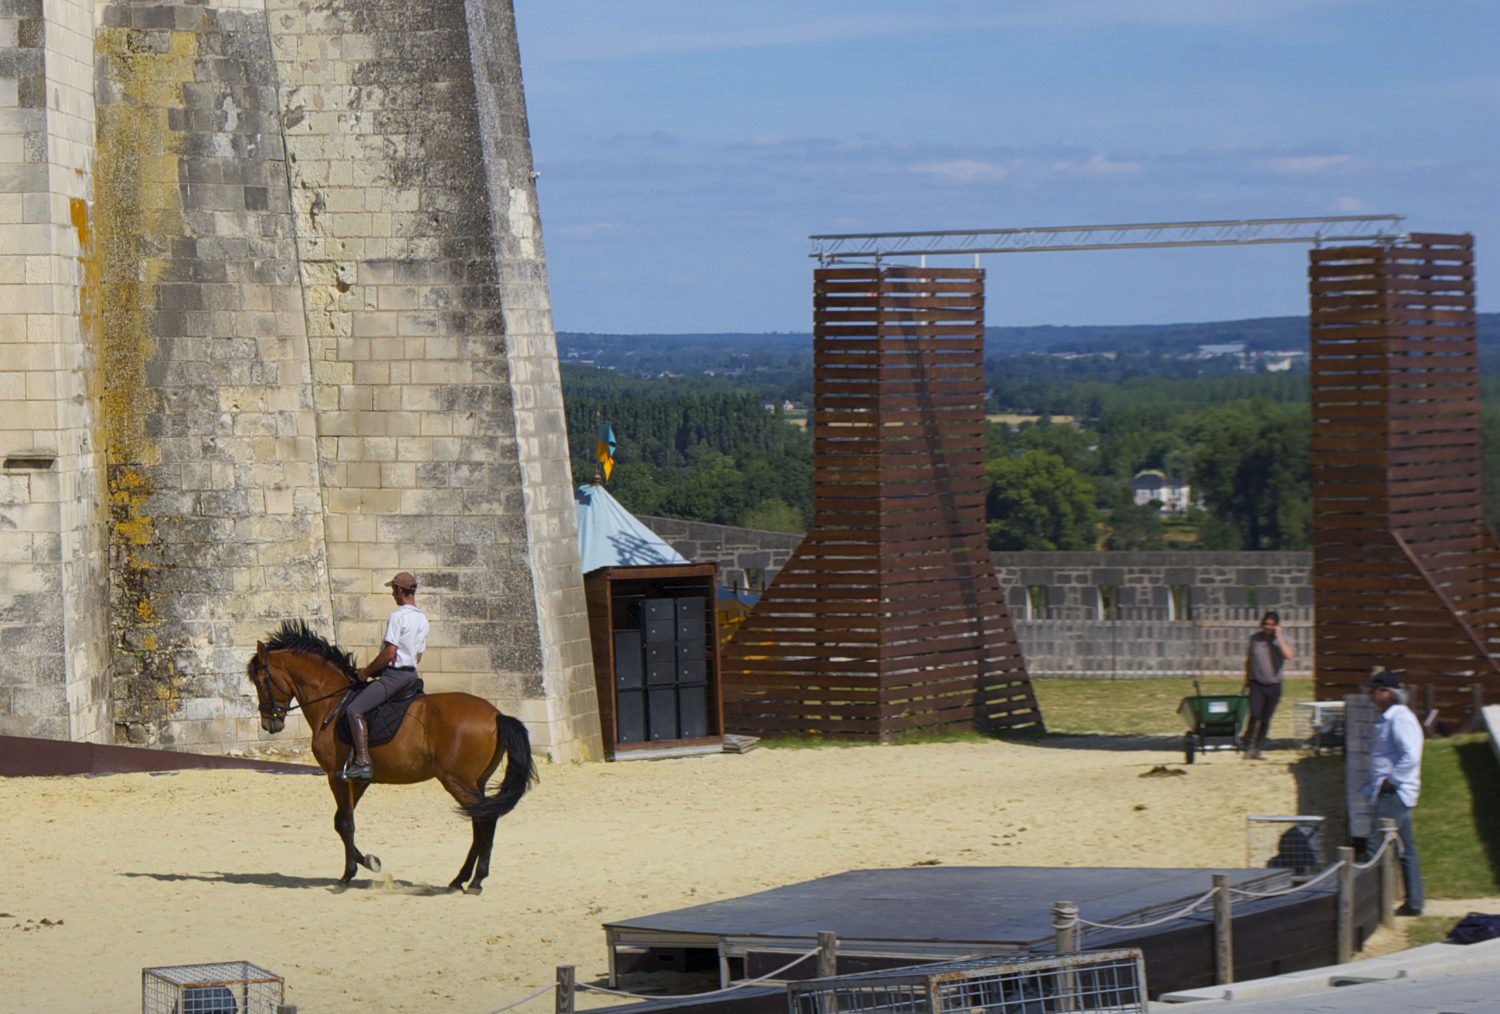 Dressage practice in front of Saumur castle